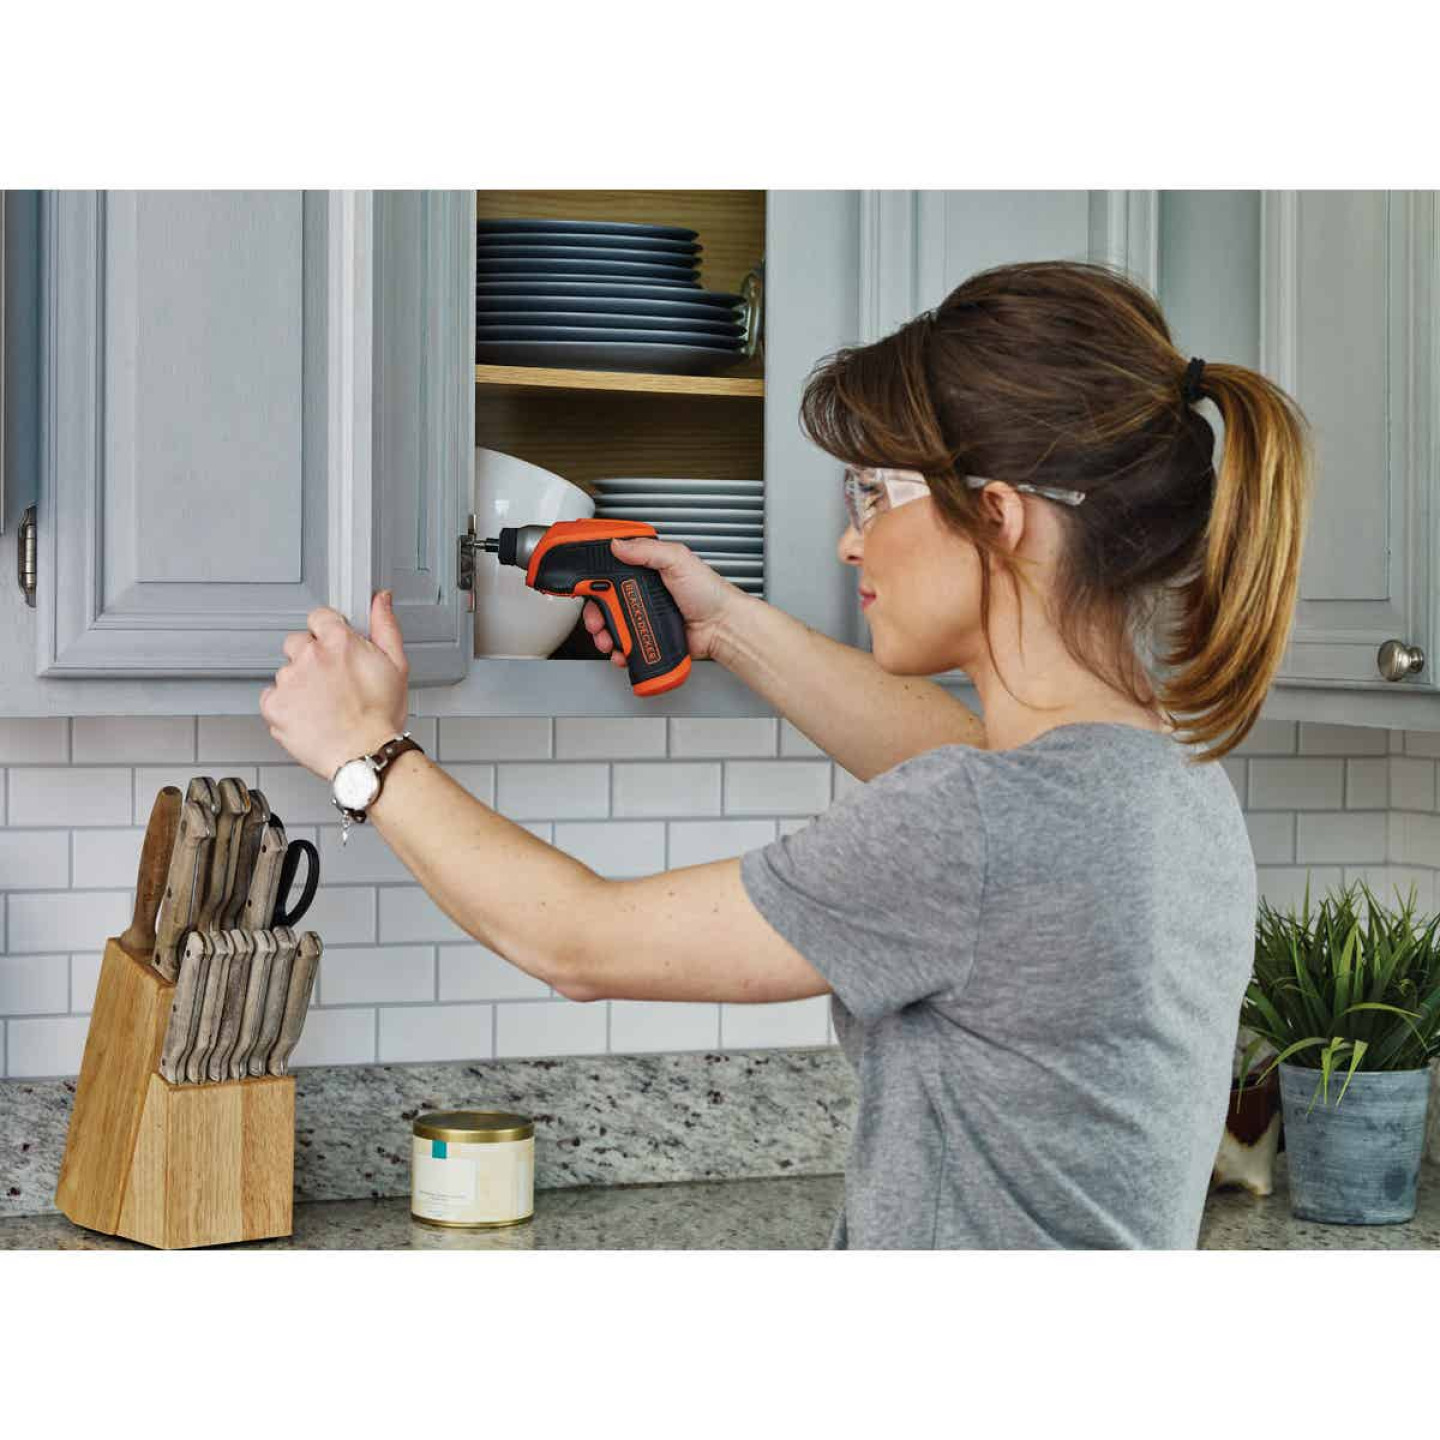 Black & Decker 4 Volt MAX Lithium-Ion 3/8 In. Cordless Screwdriver Kit Image 2